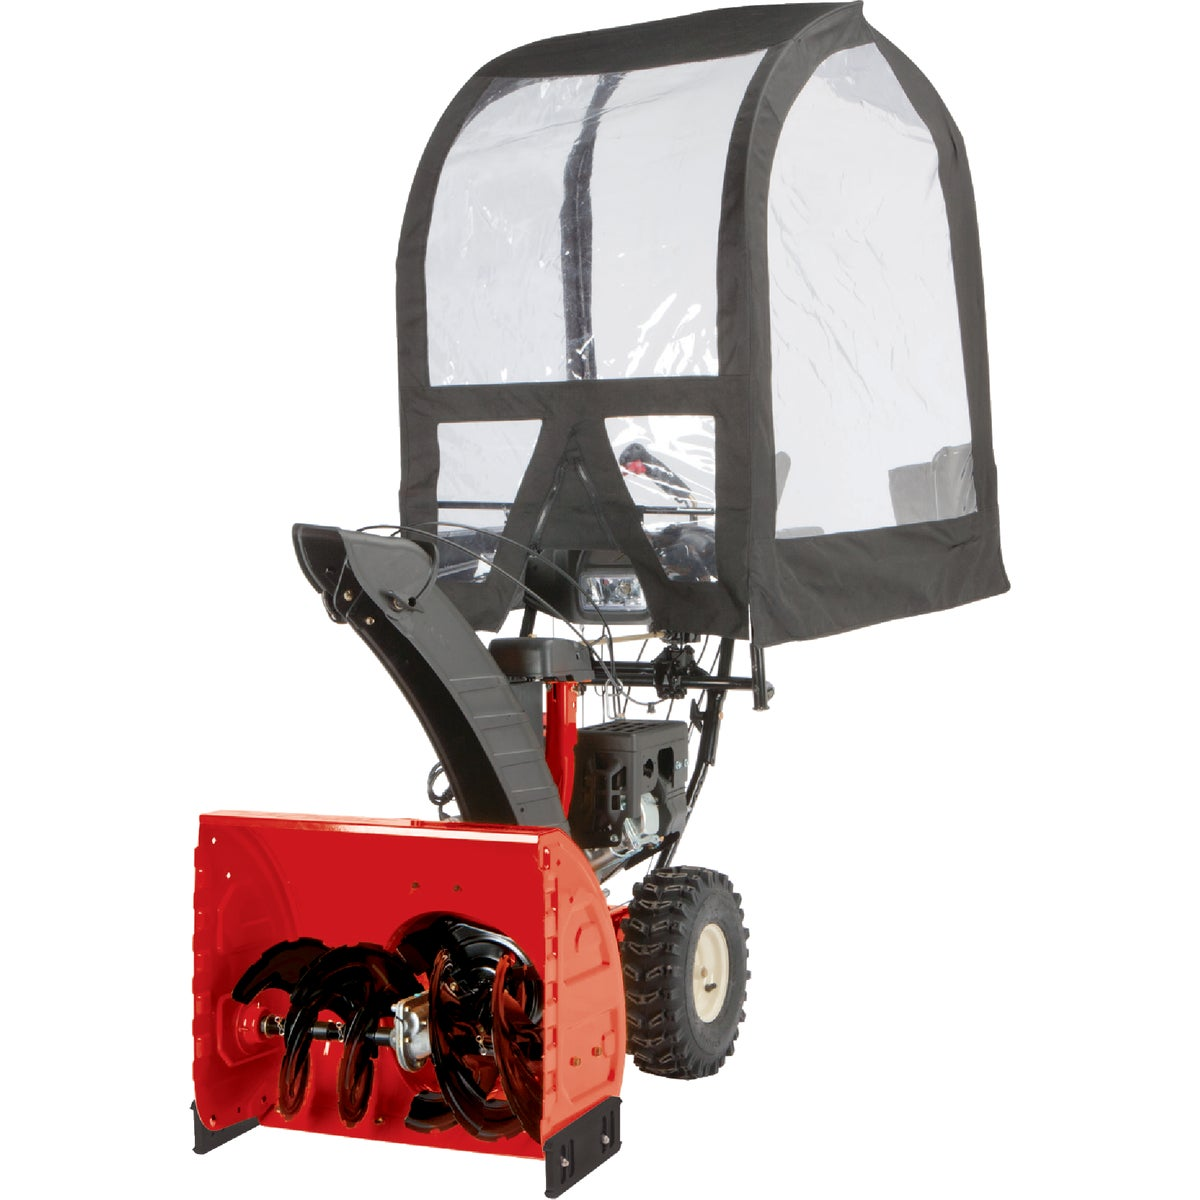 UNIV SNOW THROWER CAB - 490-241-0032 by Arnold Corp